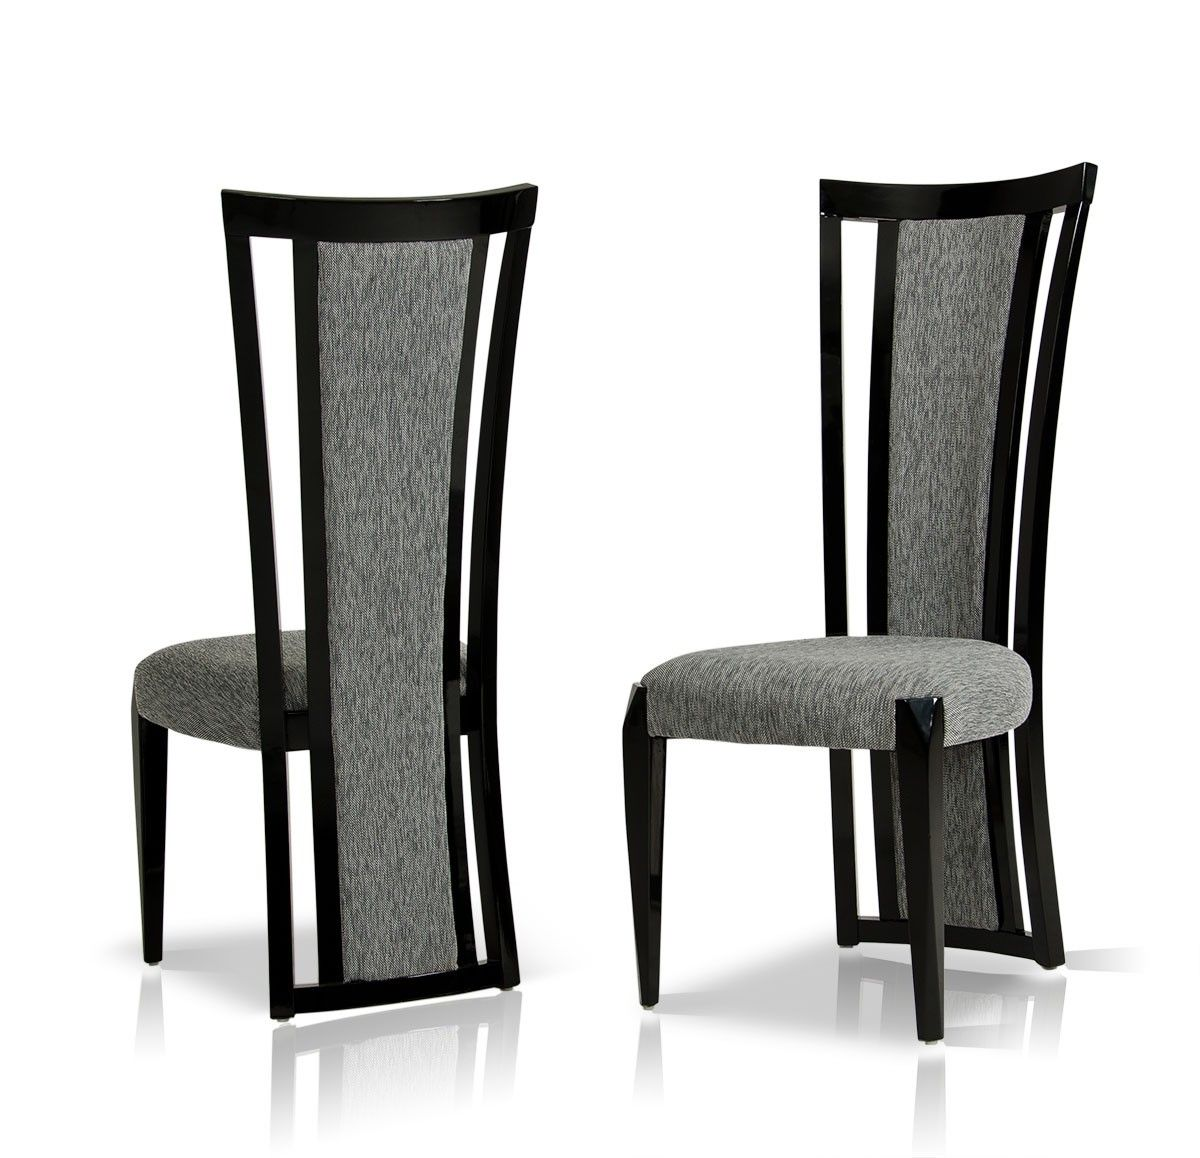 Upholstery For Dining Room Chairs: Libra Modern Fabric Dining Room Chair In 2019